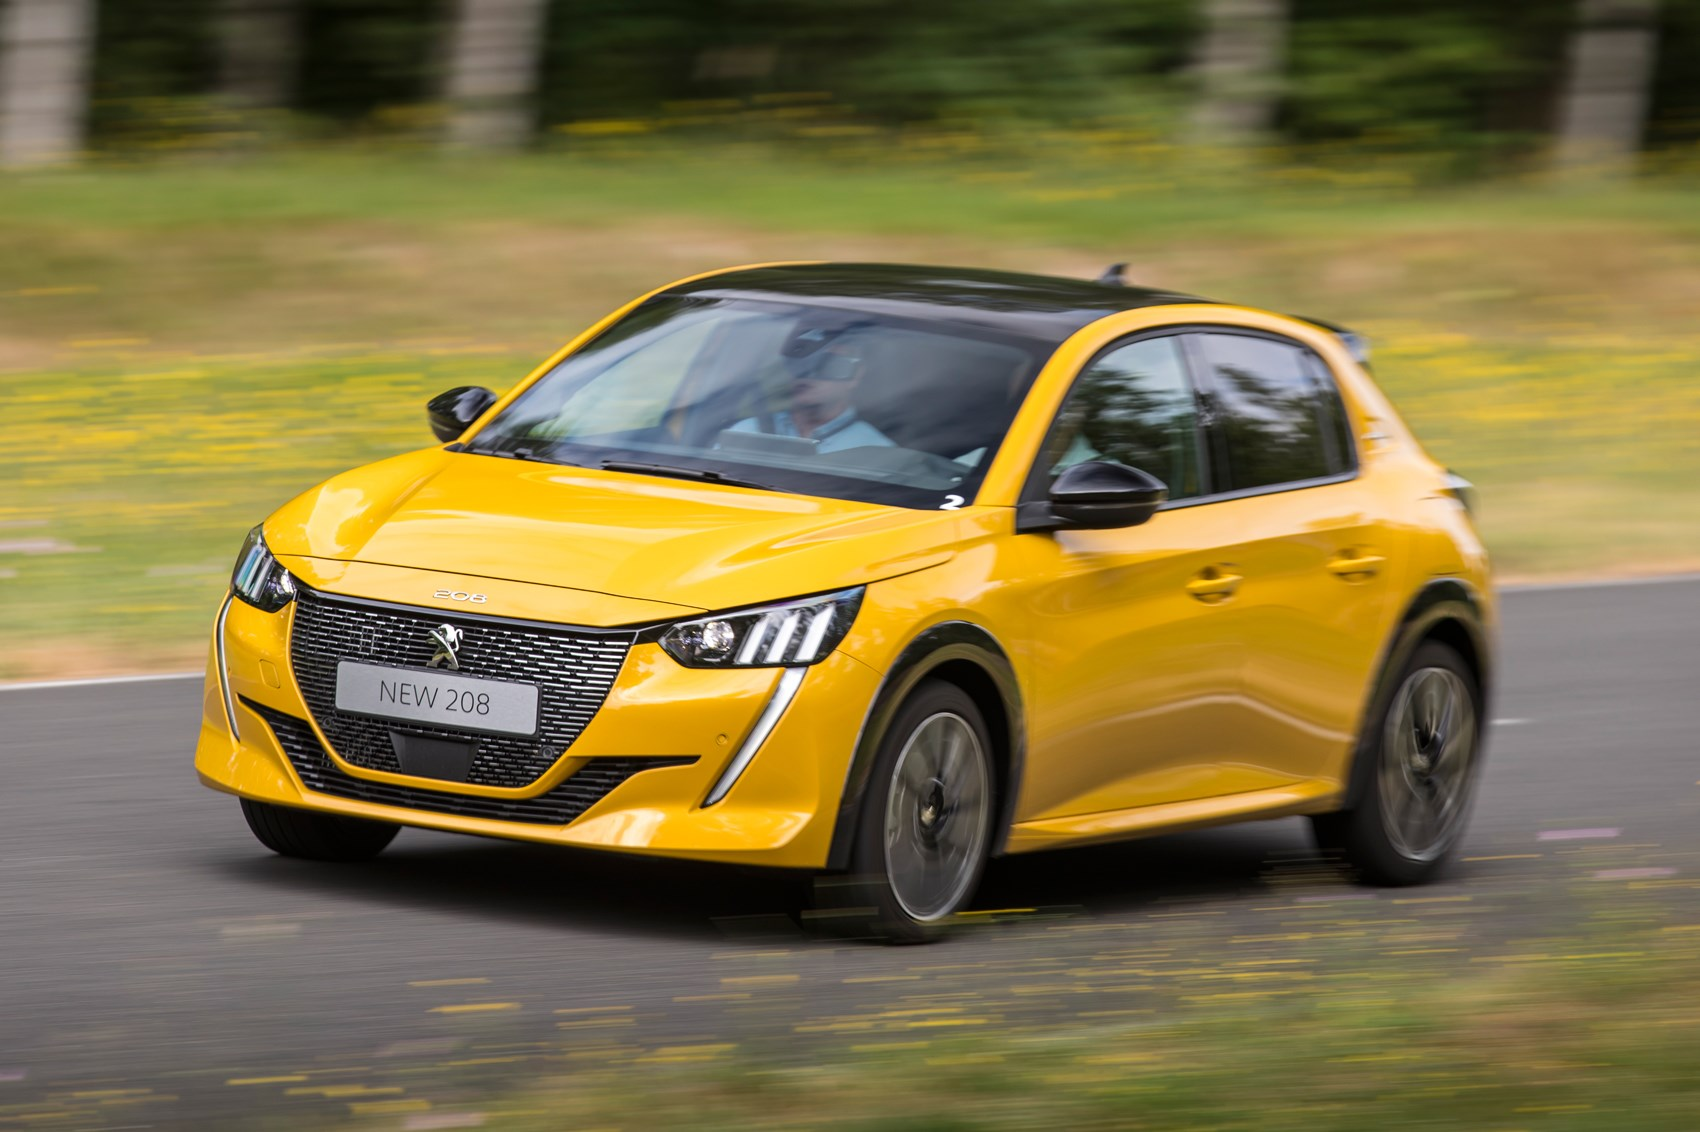 Peugeot 208 Prototype (2020) Review: Shaping Up Nicely